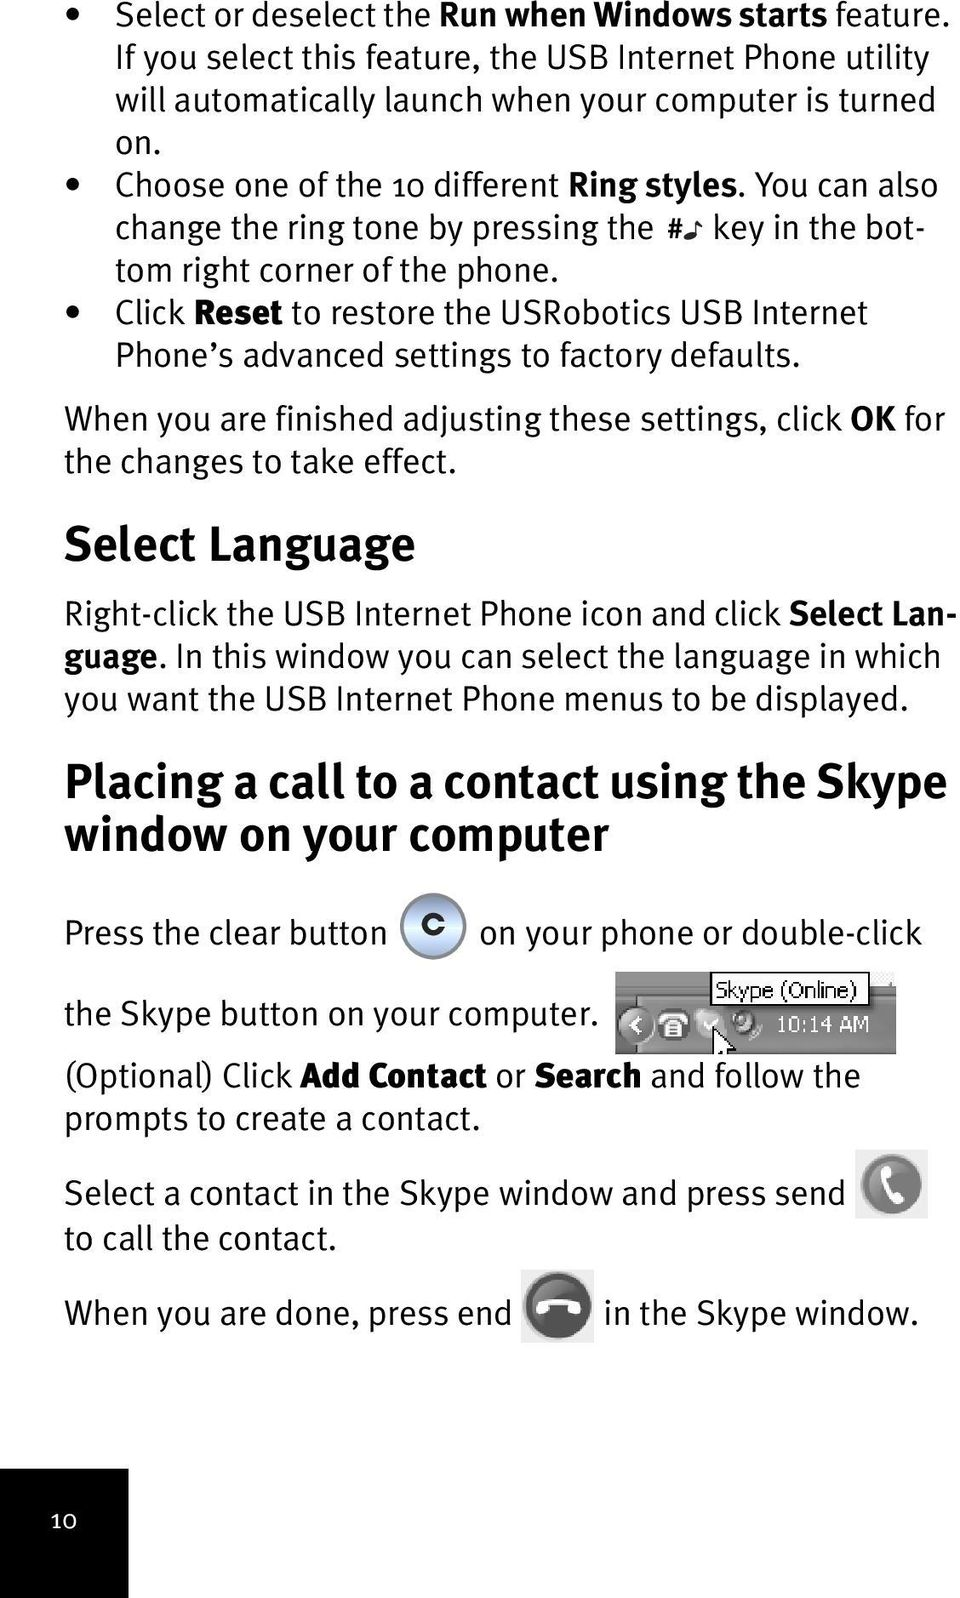 Click Reset to restore the USRobotics USB Internet Phone s advanced settings to factory defaults. When you are finished adjusting these settings, click OK for the changes to take effect.